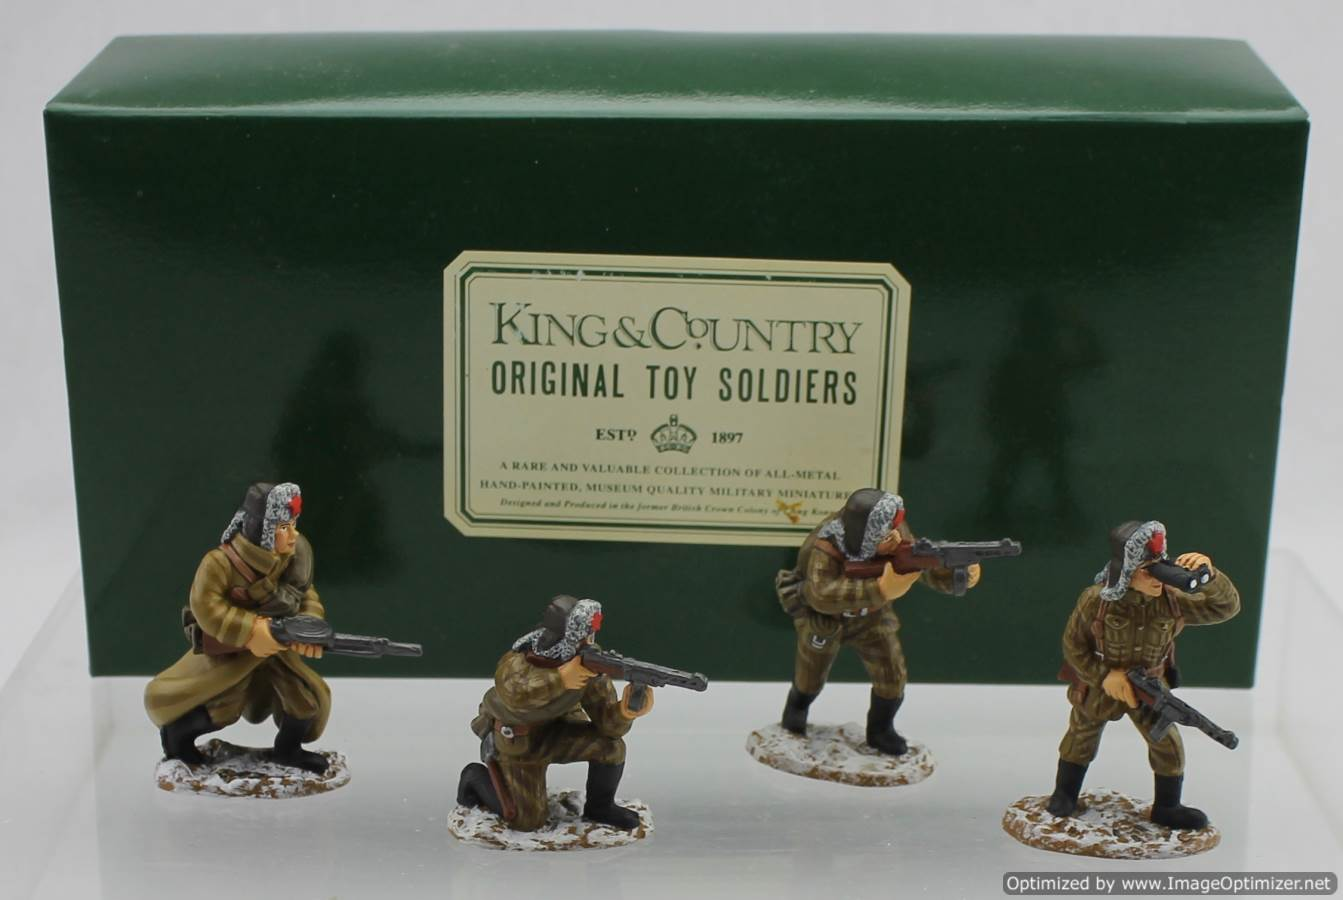 King /& country-soldier of the ws095-series wermarcht grosdeutschland 2007